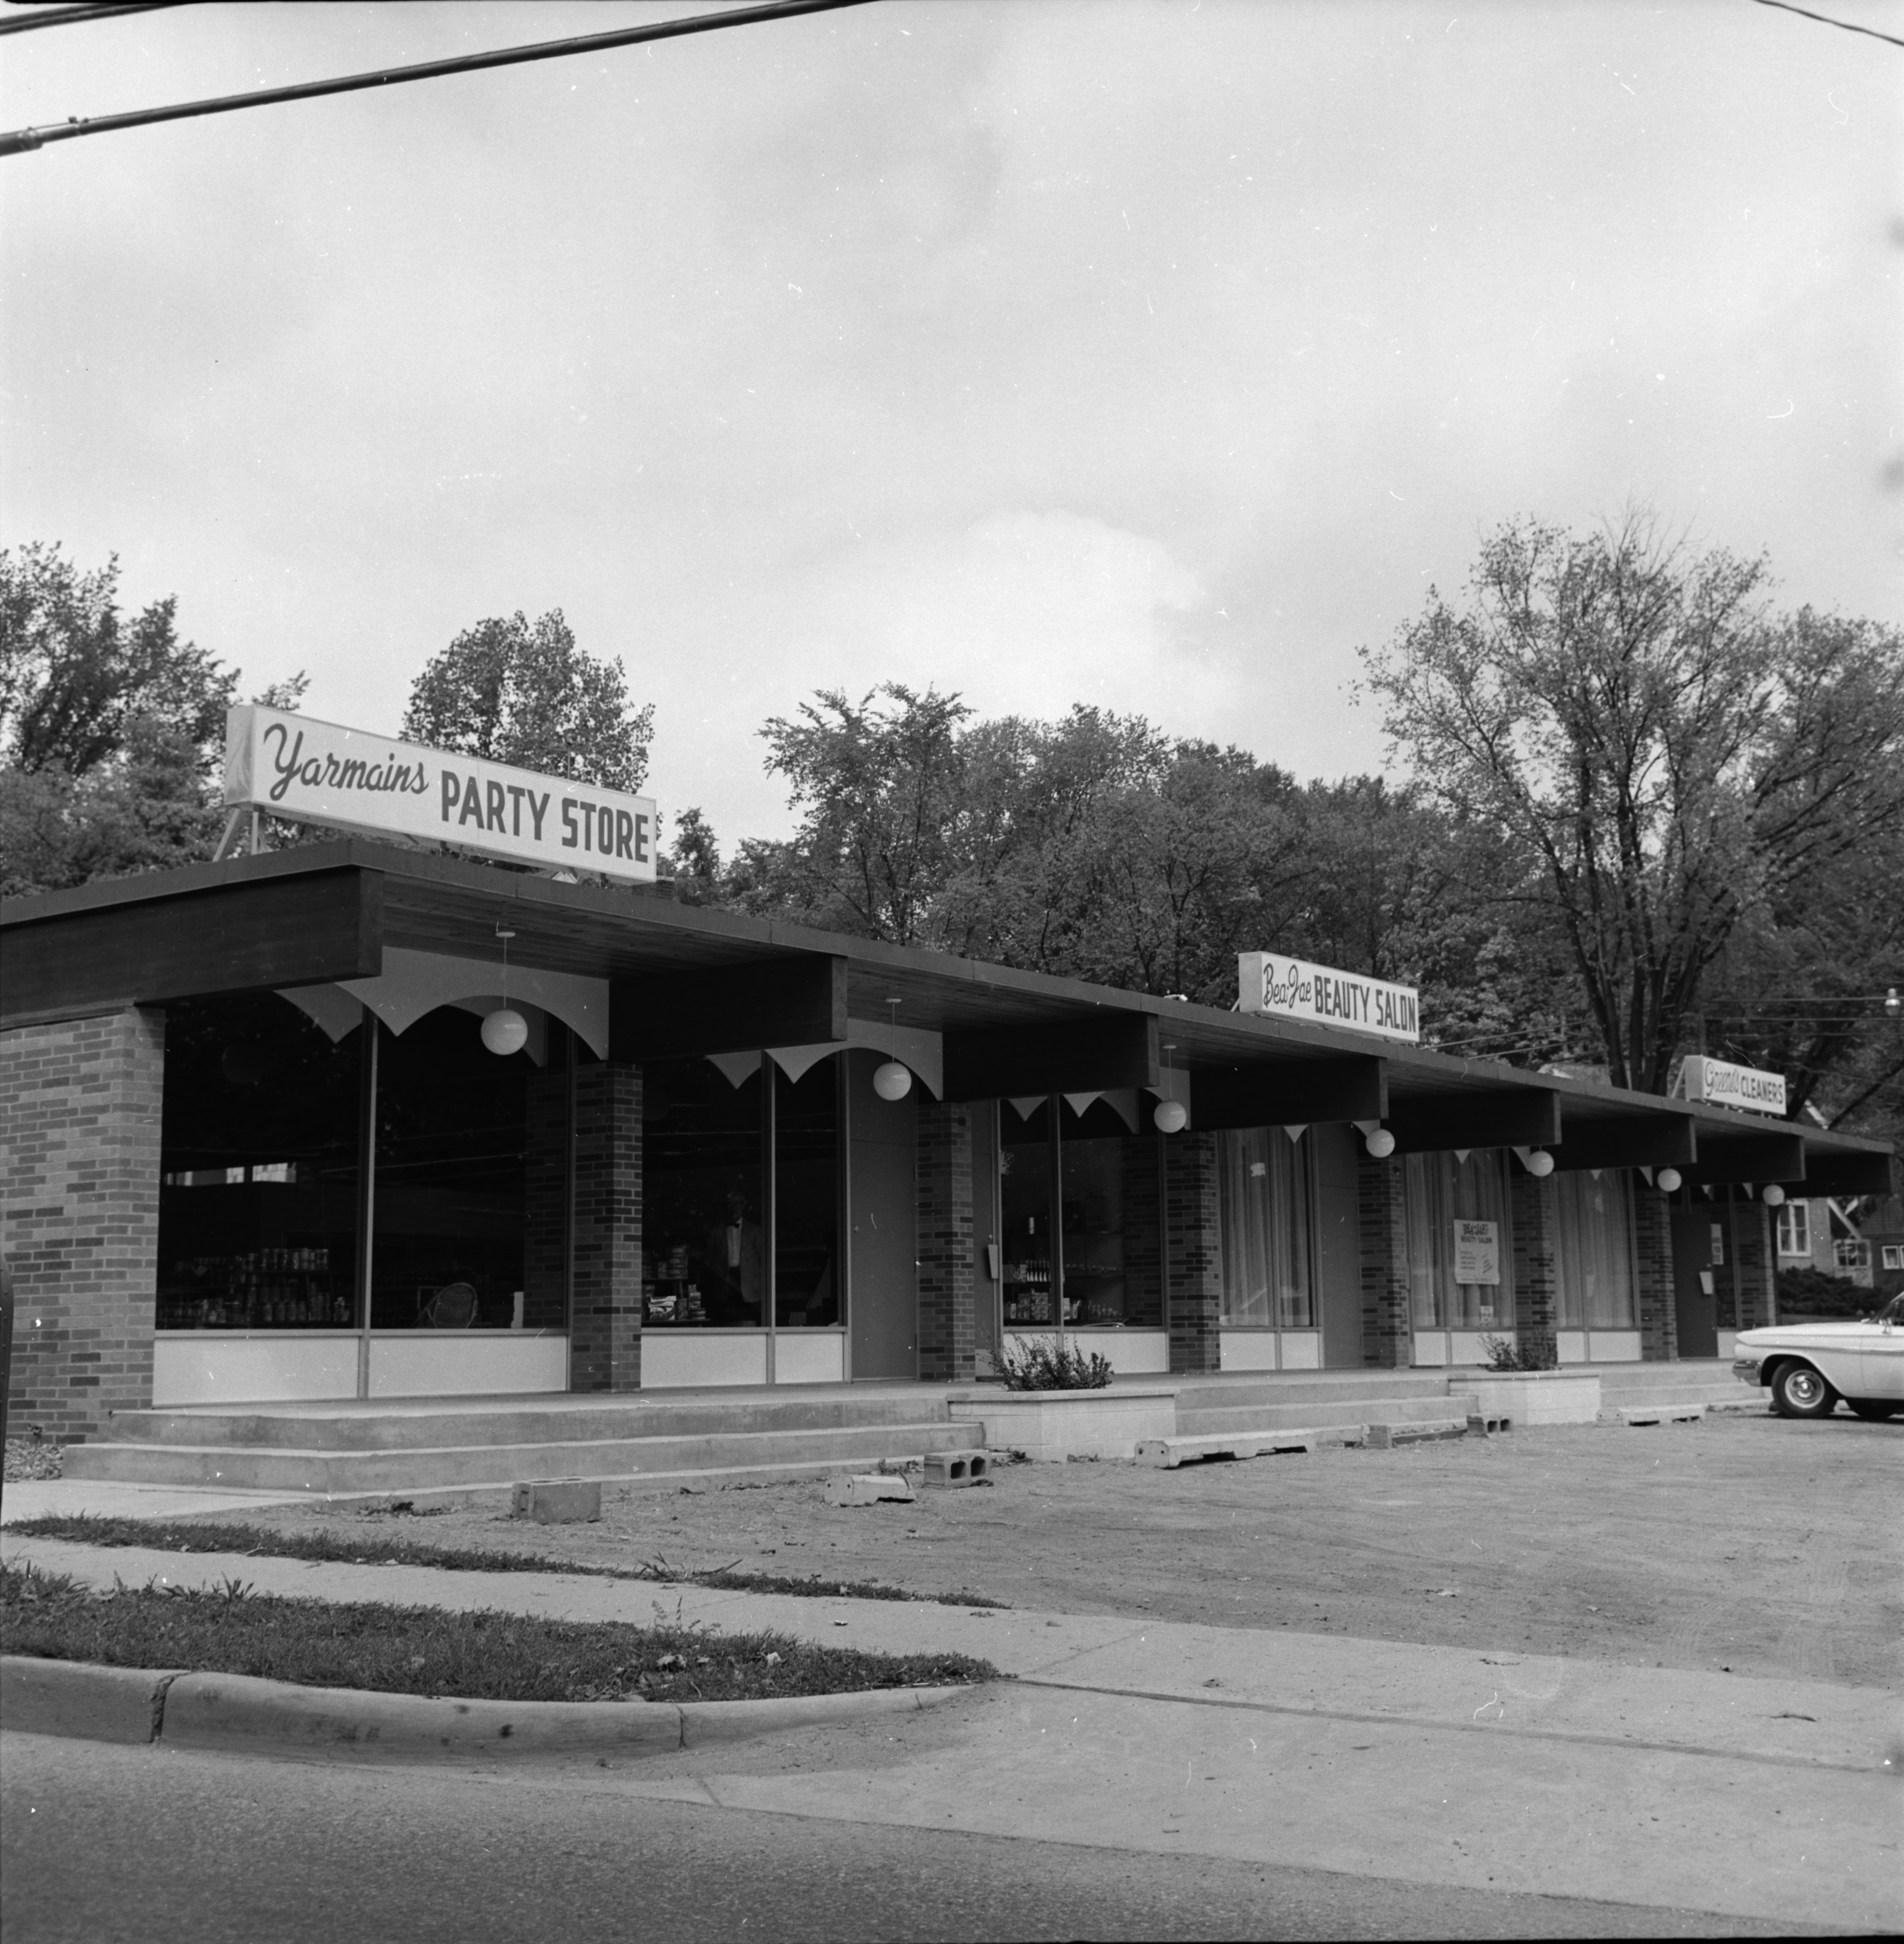 Yarmains Party Store and other stores, September 1963 image